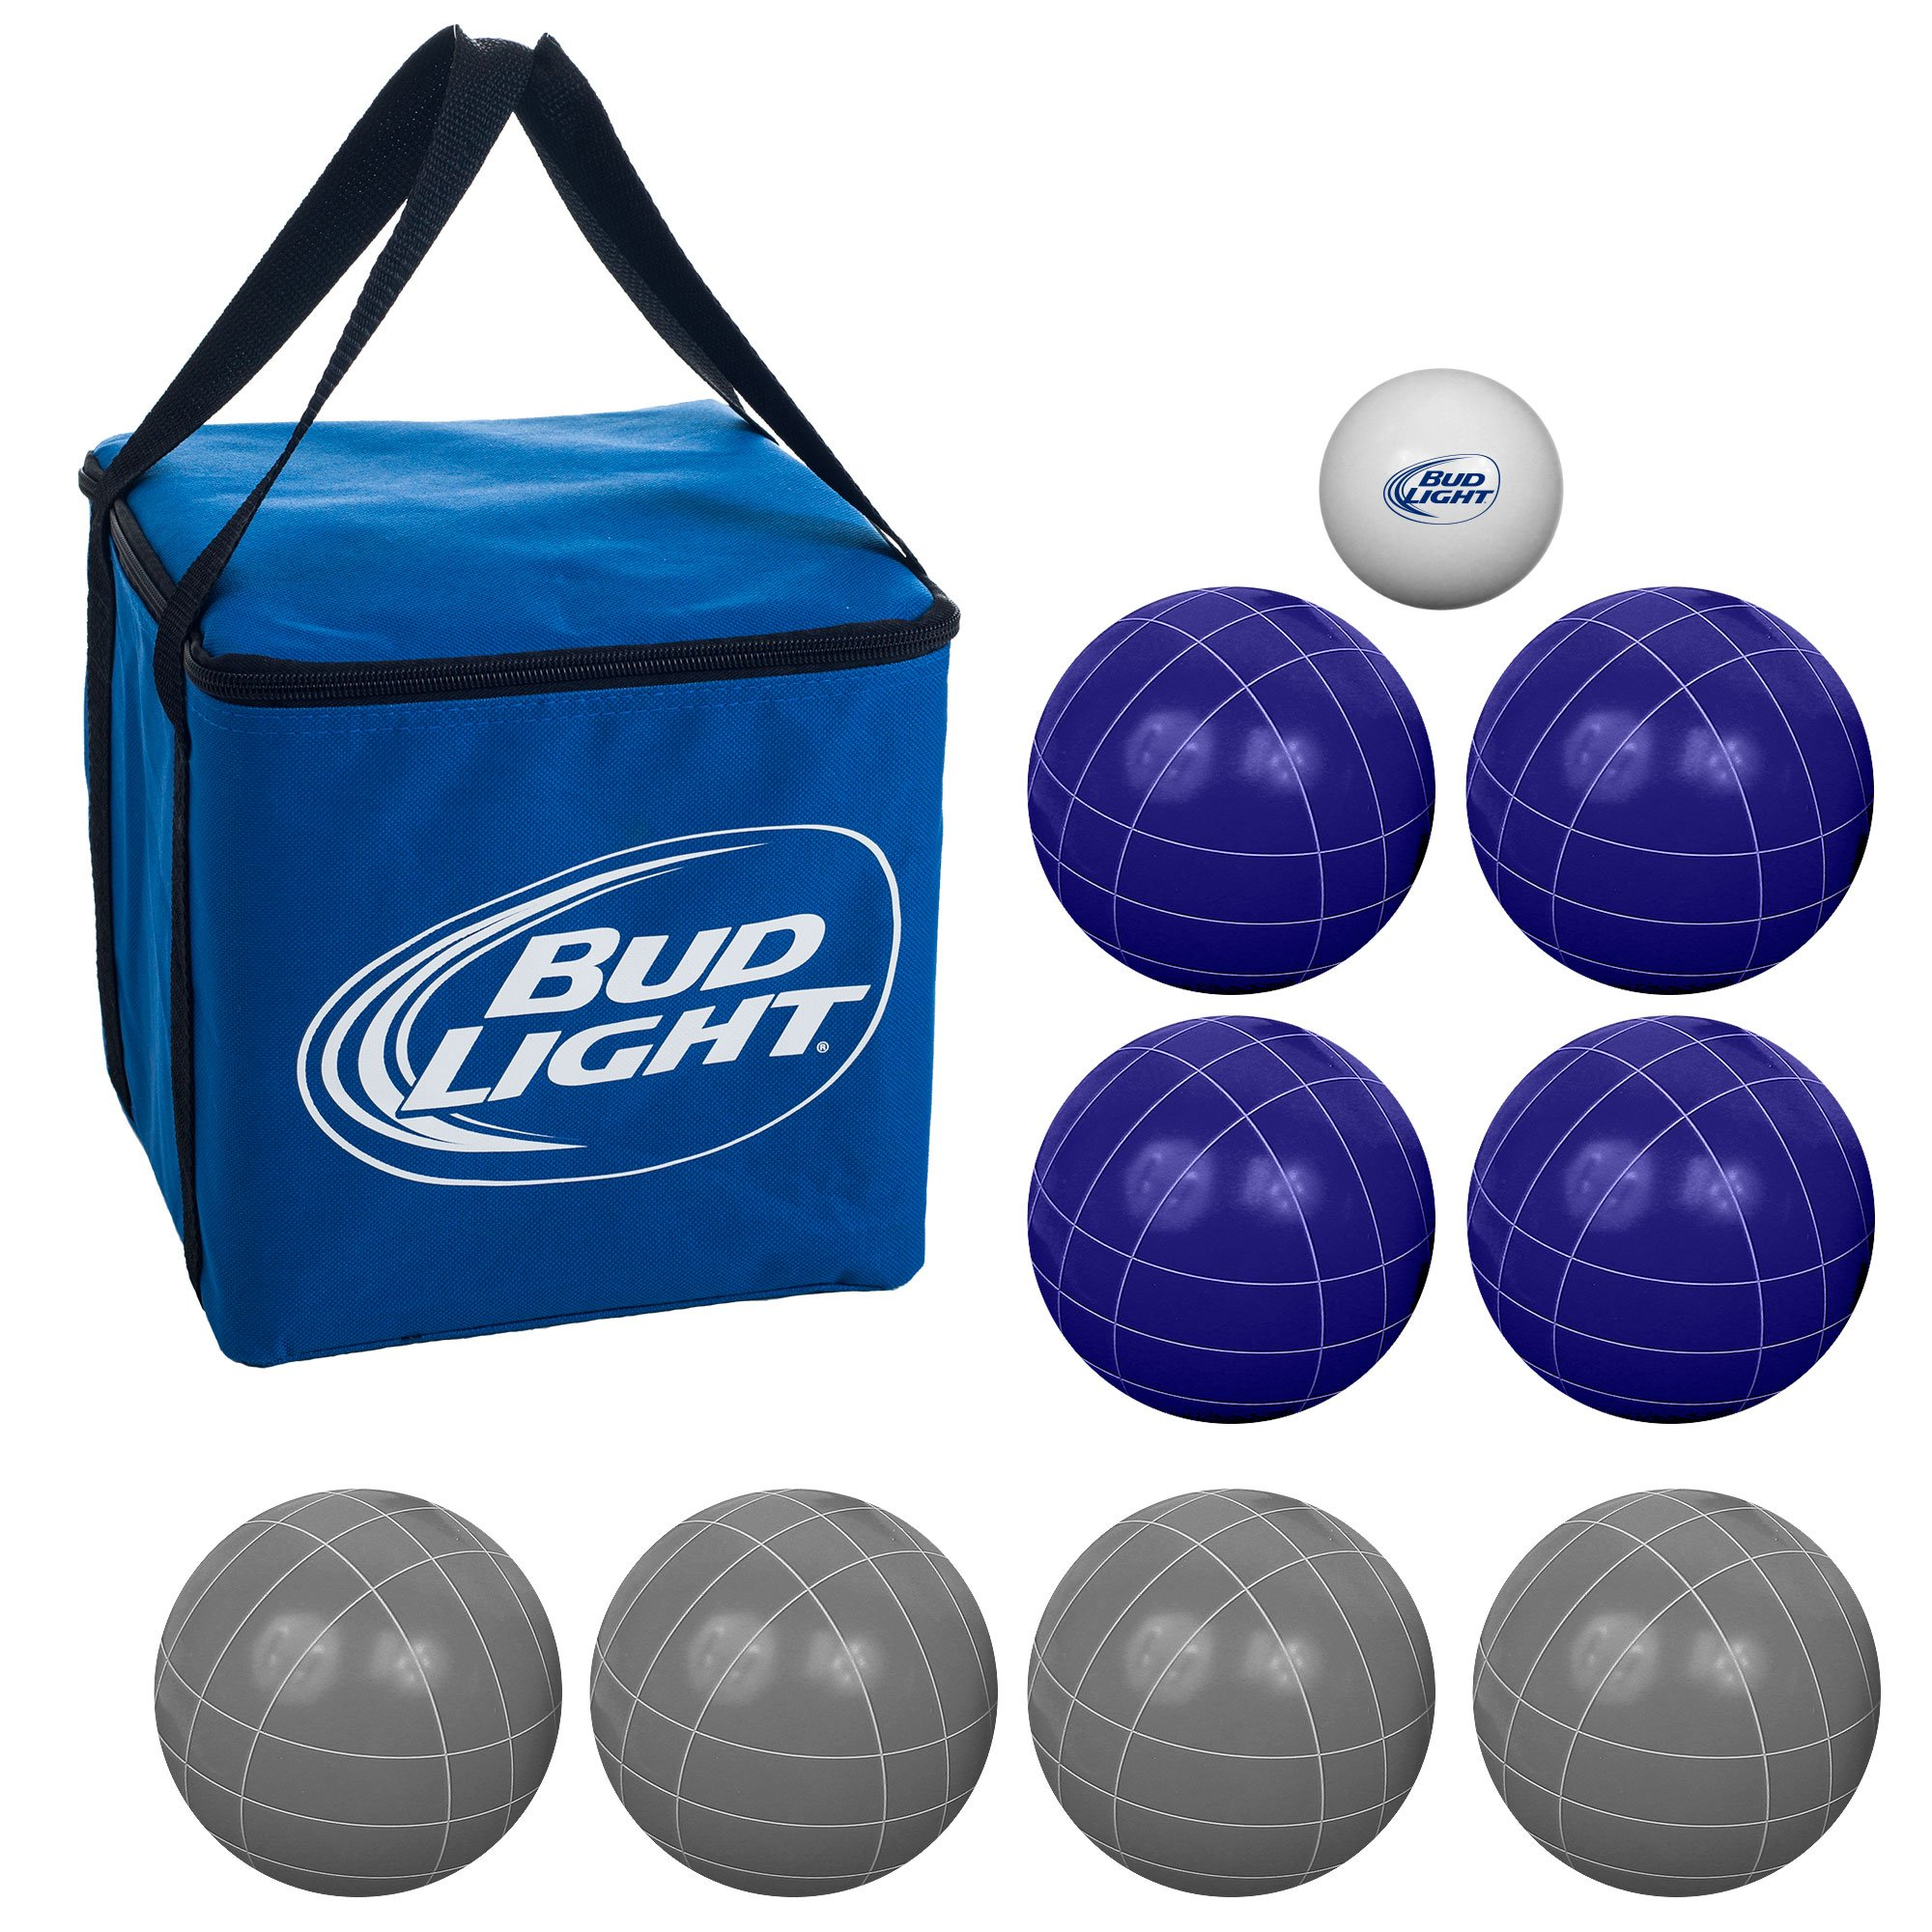 Premium Regulation Size Bud Light Bocce Ball Set - Includes Easy Carry Case! by TMG